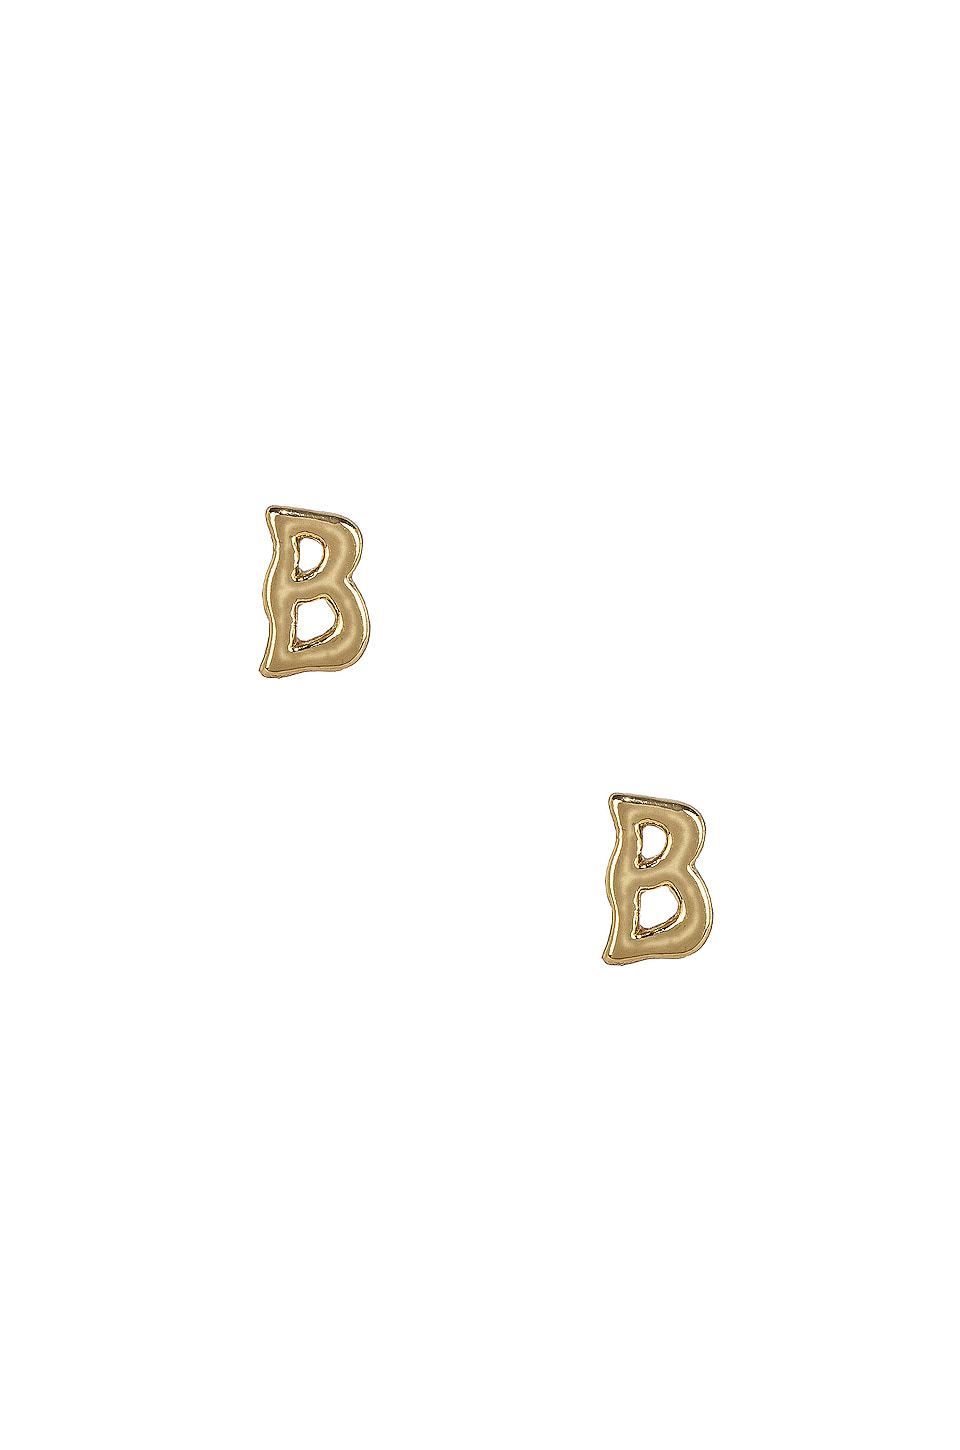 B Initial Stud Earrings